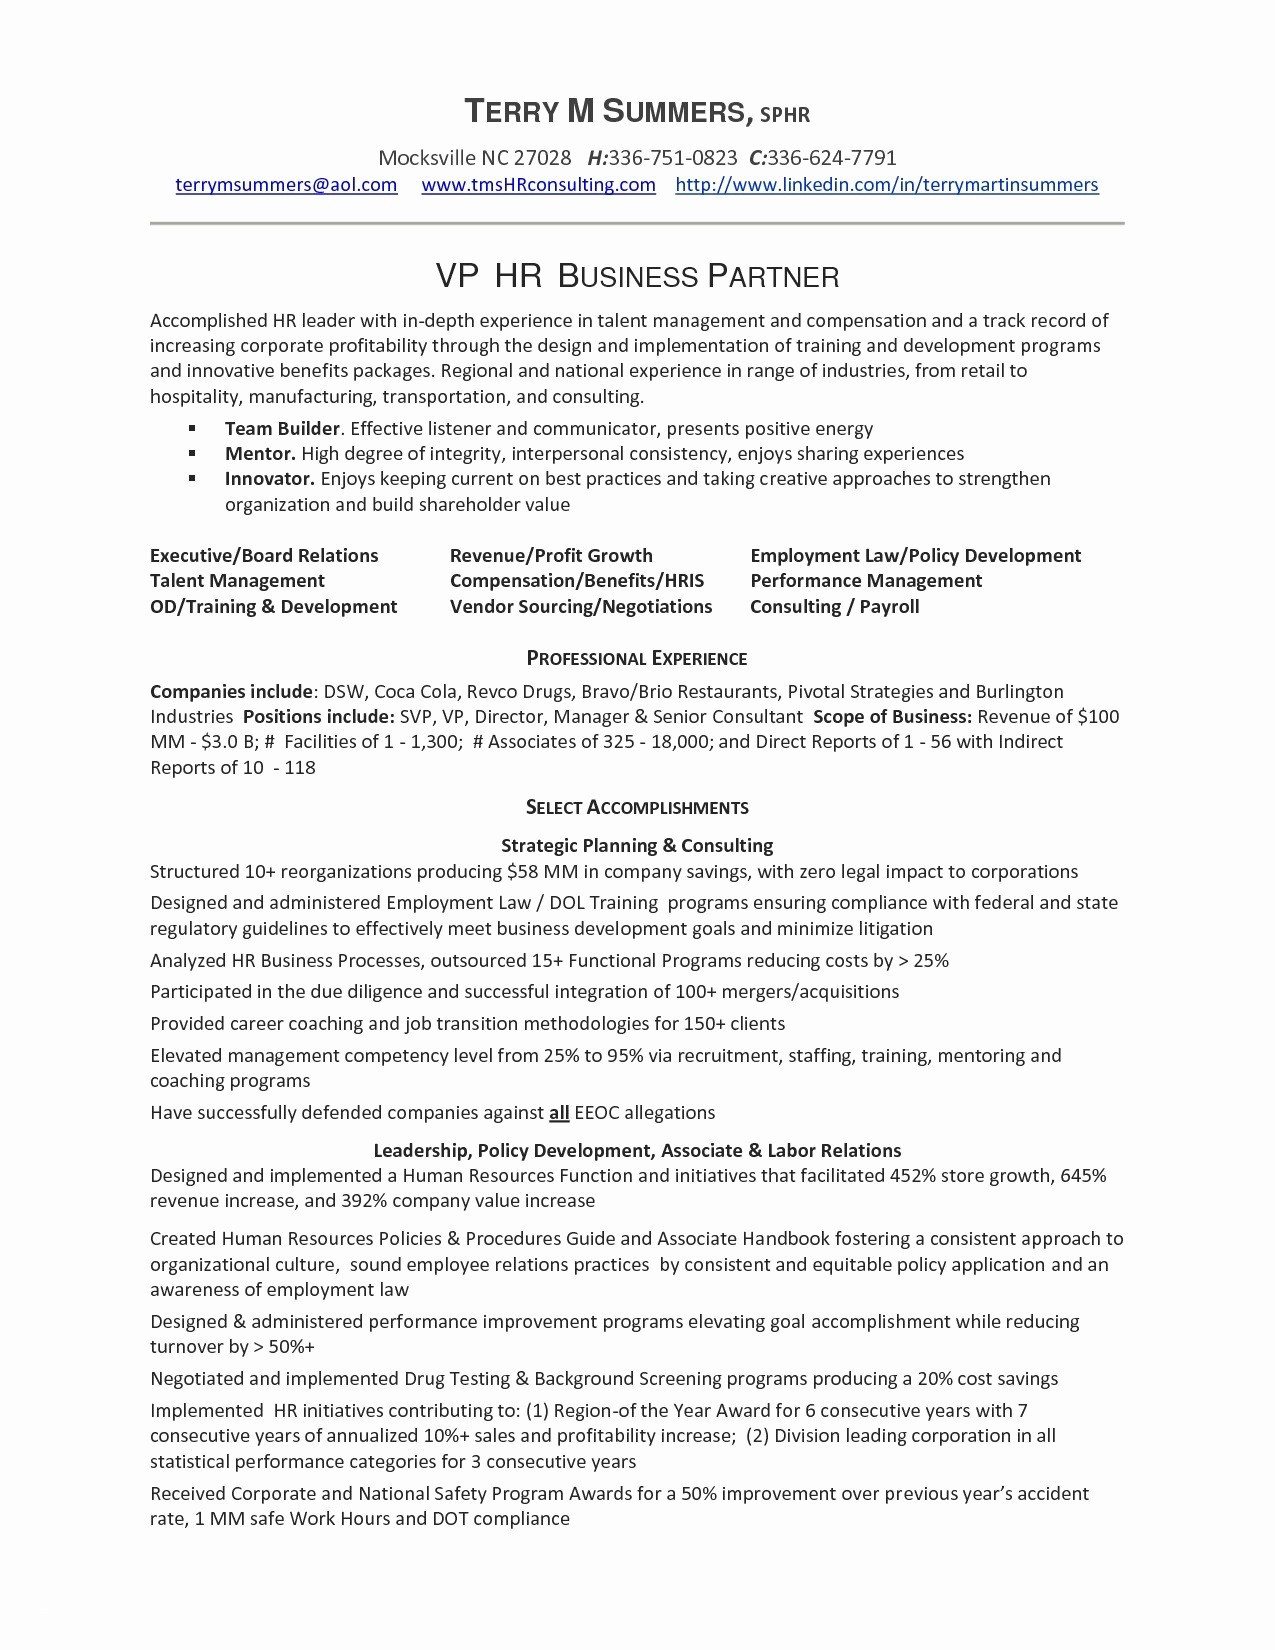 Program Manager Resume Template - Program Analyst Resume Beautiful New Program Manager Resume Examples